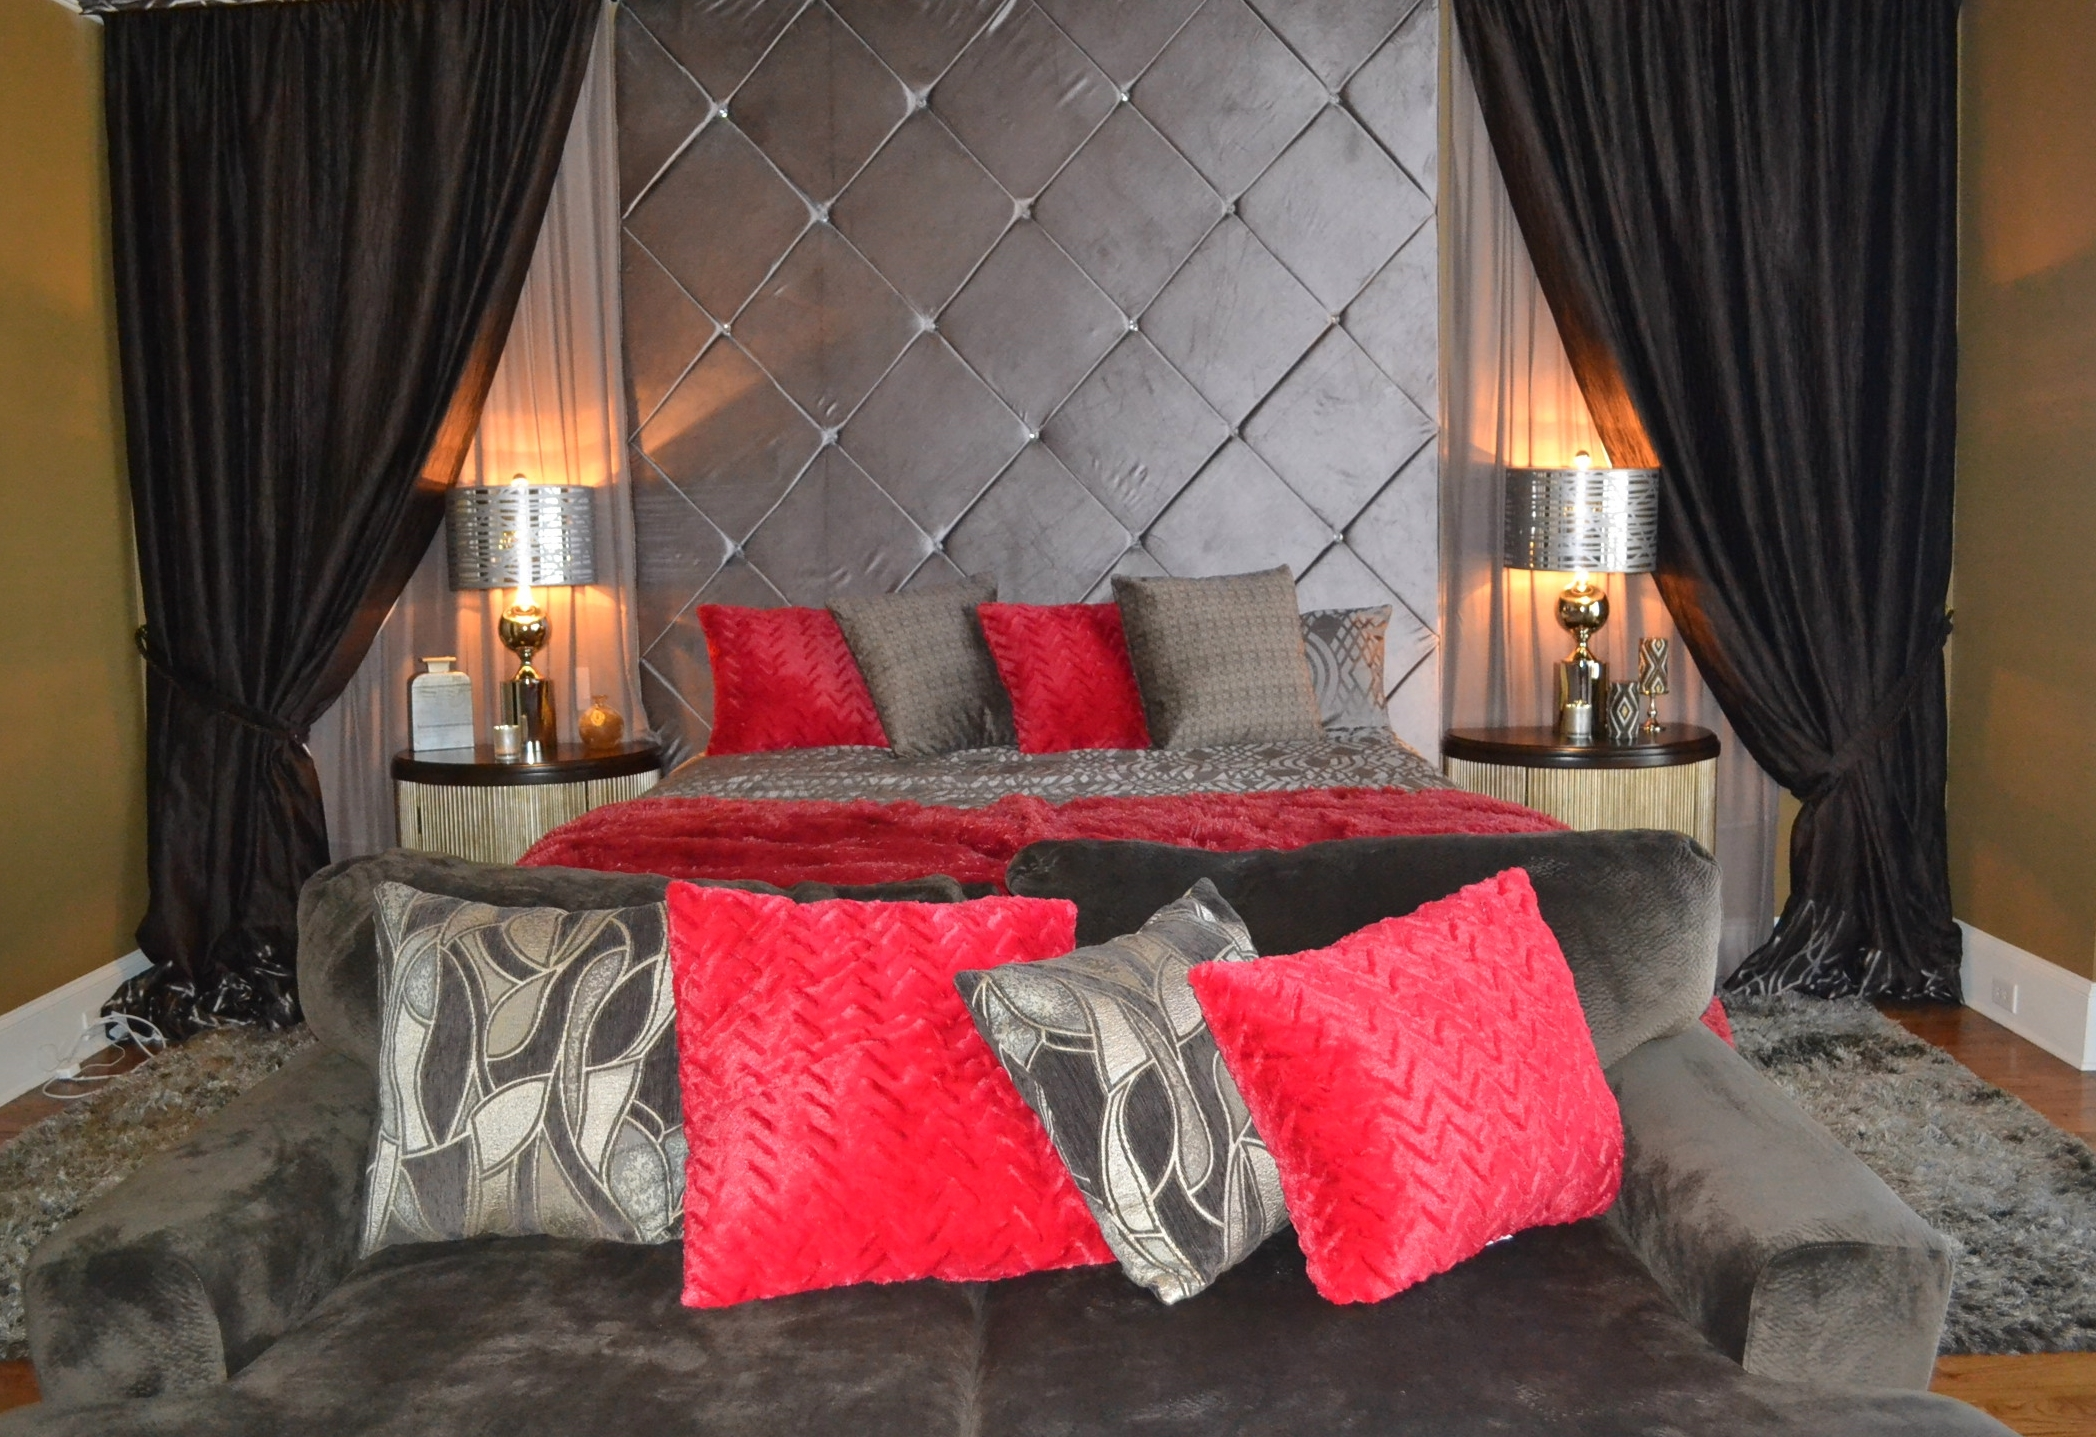 chocolate and silver, with a splash or red makes a cozy romantic bedroom